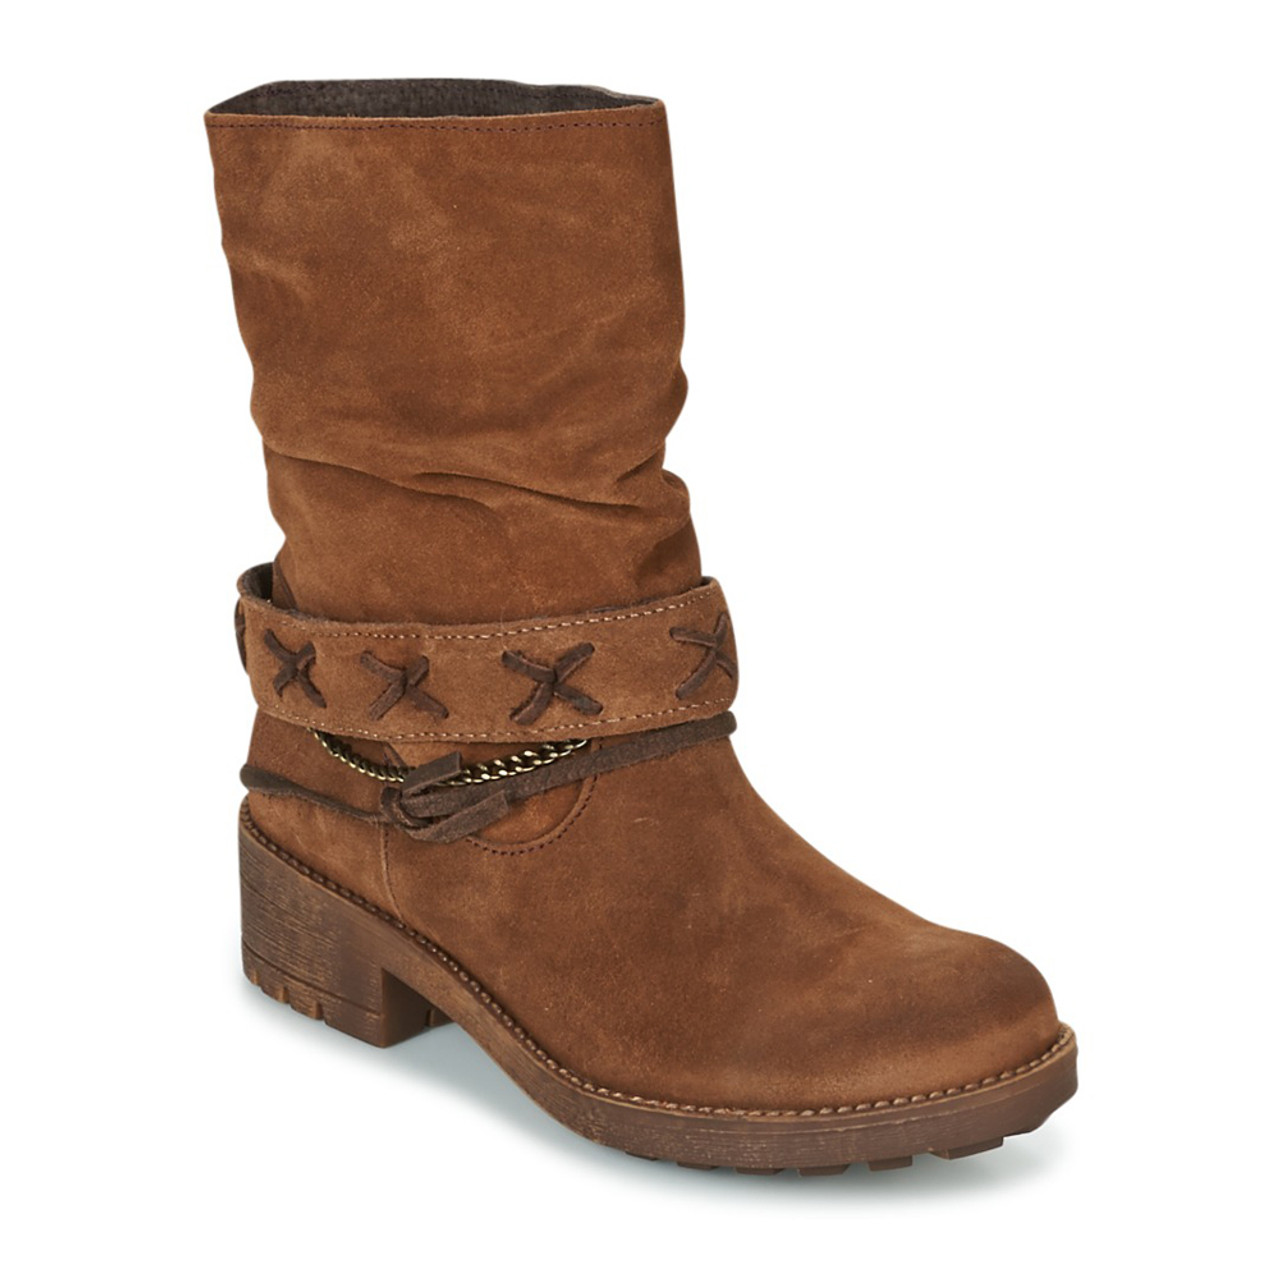 89f5779341f Coolway Women's Angus Boot Brown